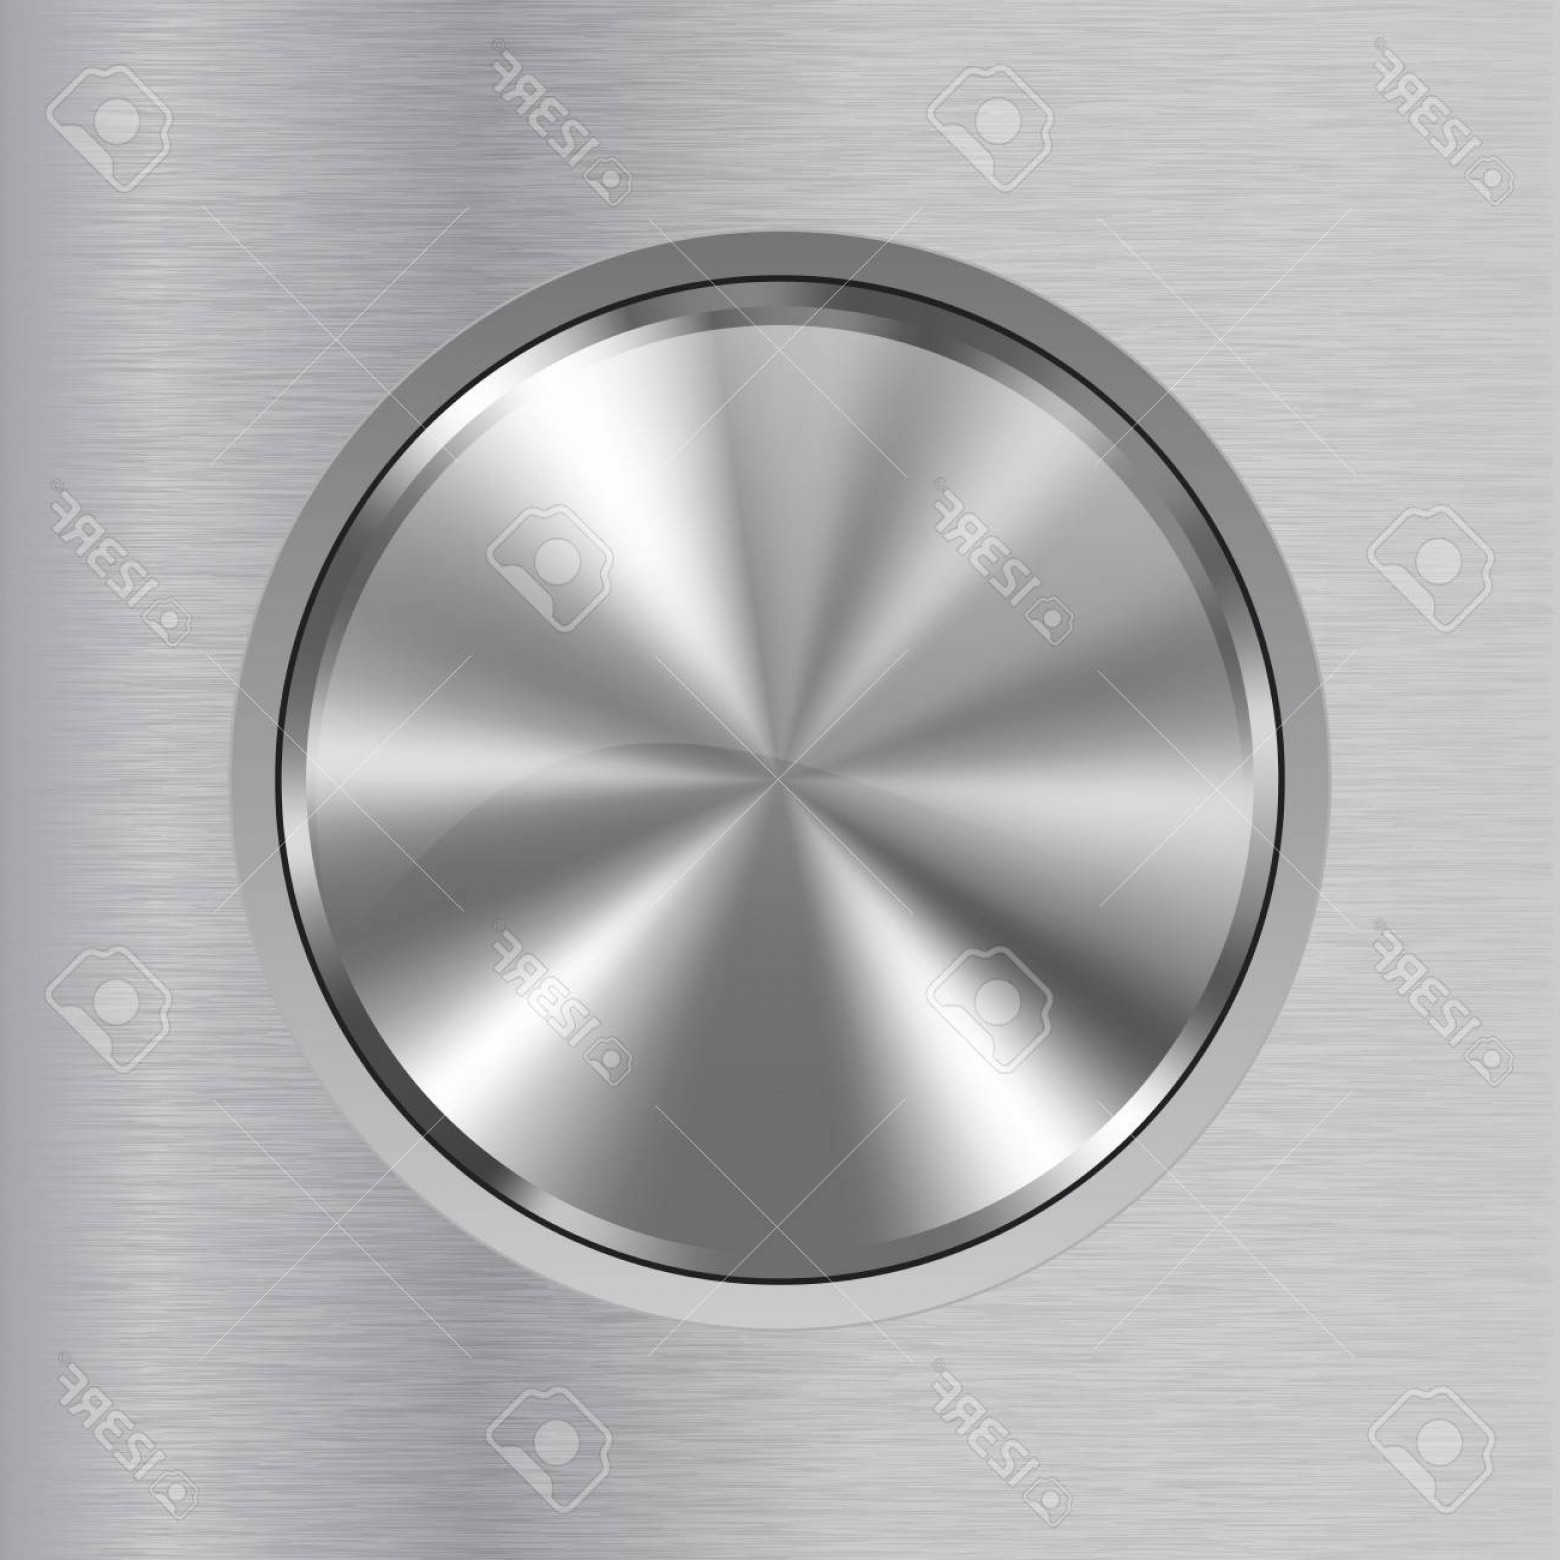 Metal Button Vector: Photostock Vector Round Metal Button On Brushed Background